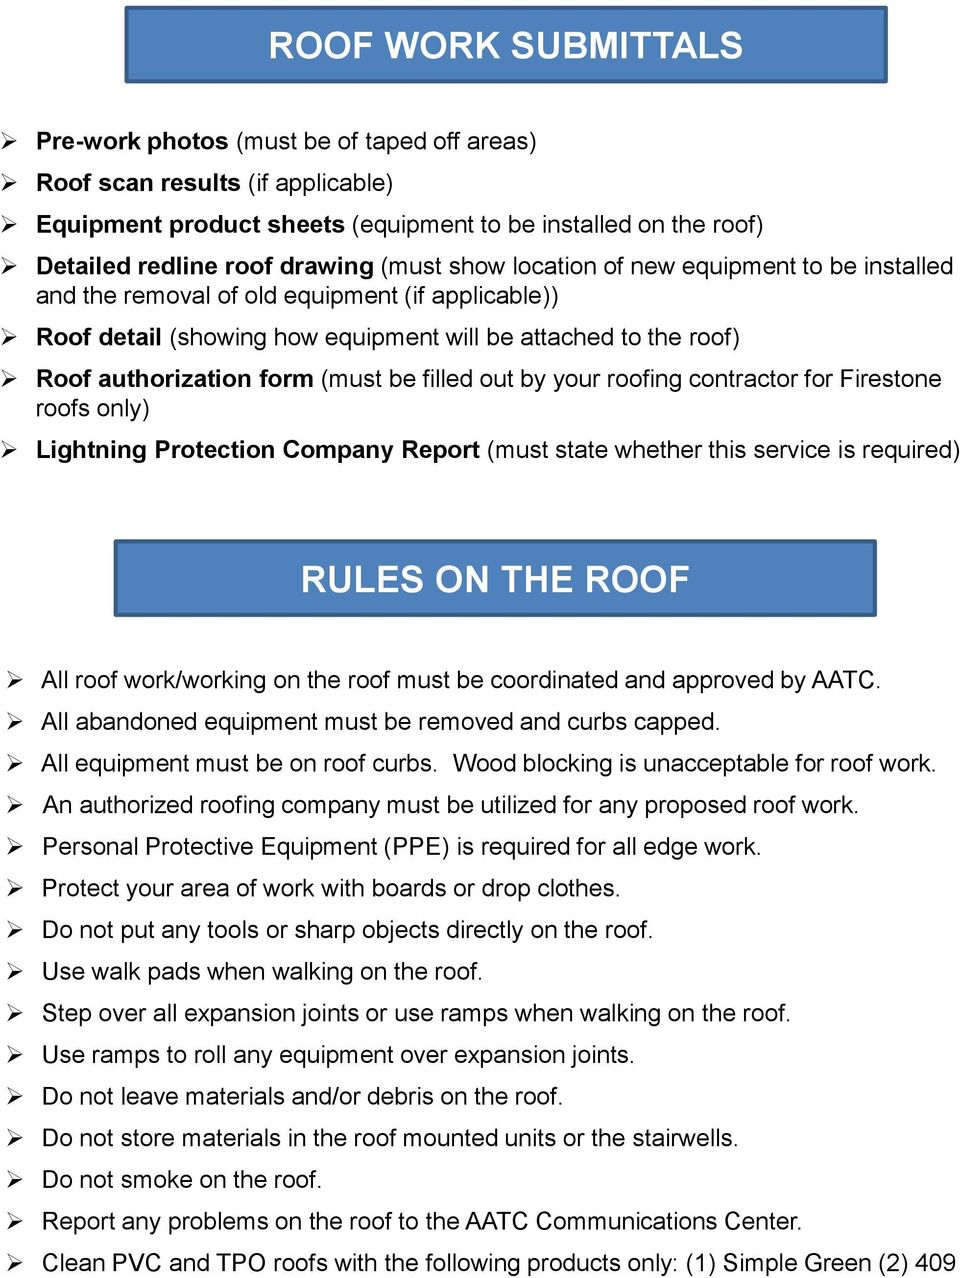 be filled out by your roofing contractor for Firestone roofs only) Lightning Protection Company Report (must state whether this service is required) RULES ON THE ROOF All roof work/working on the